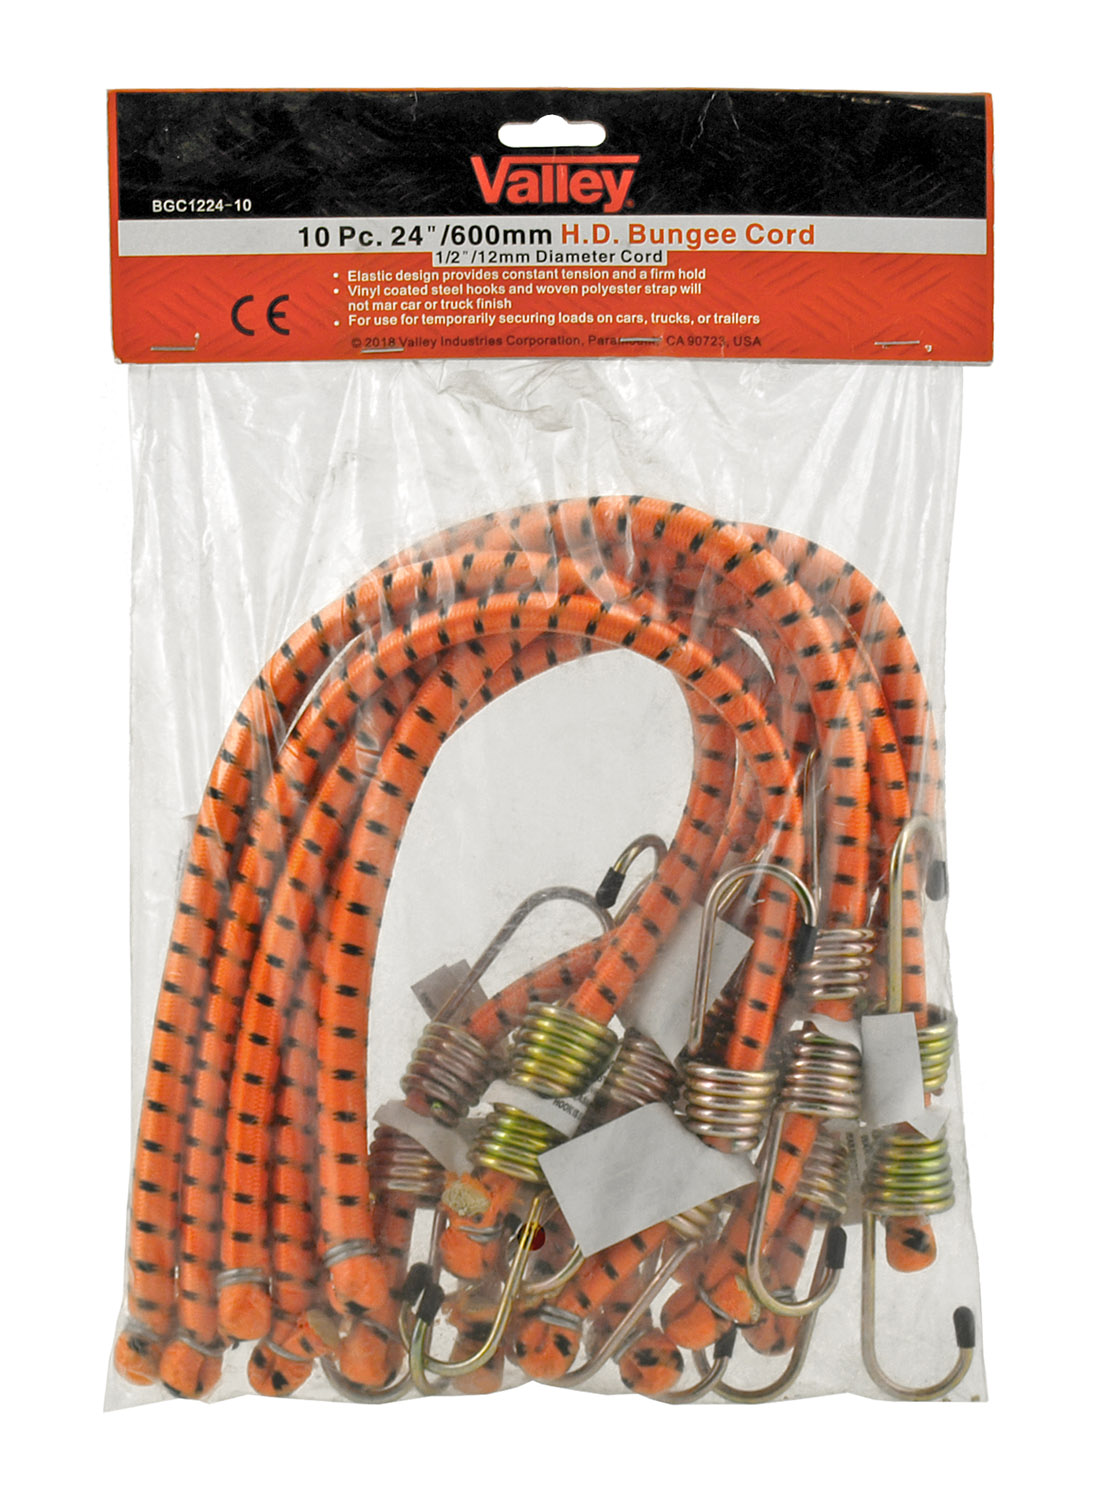 10 pc. 24 in Heavy Duty Bungee Cords - Valley